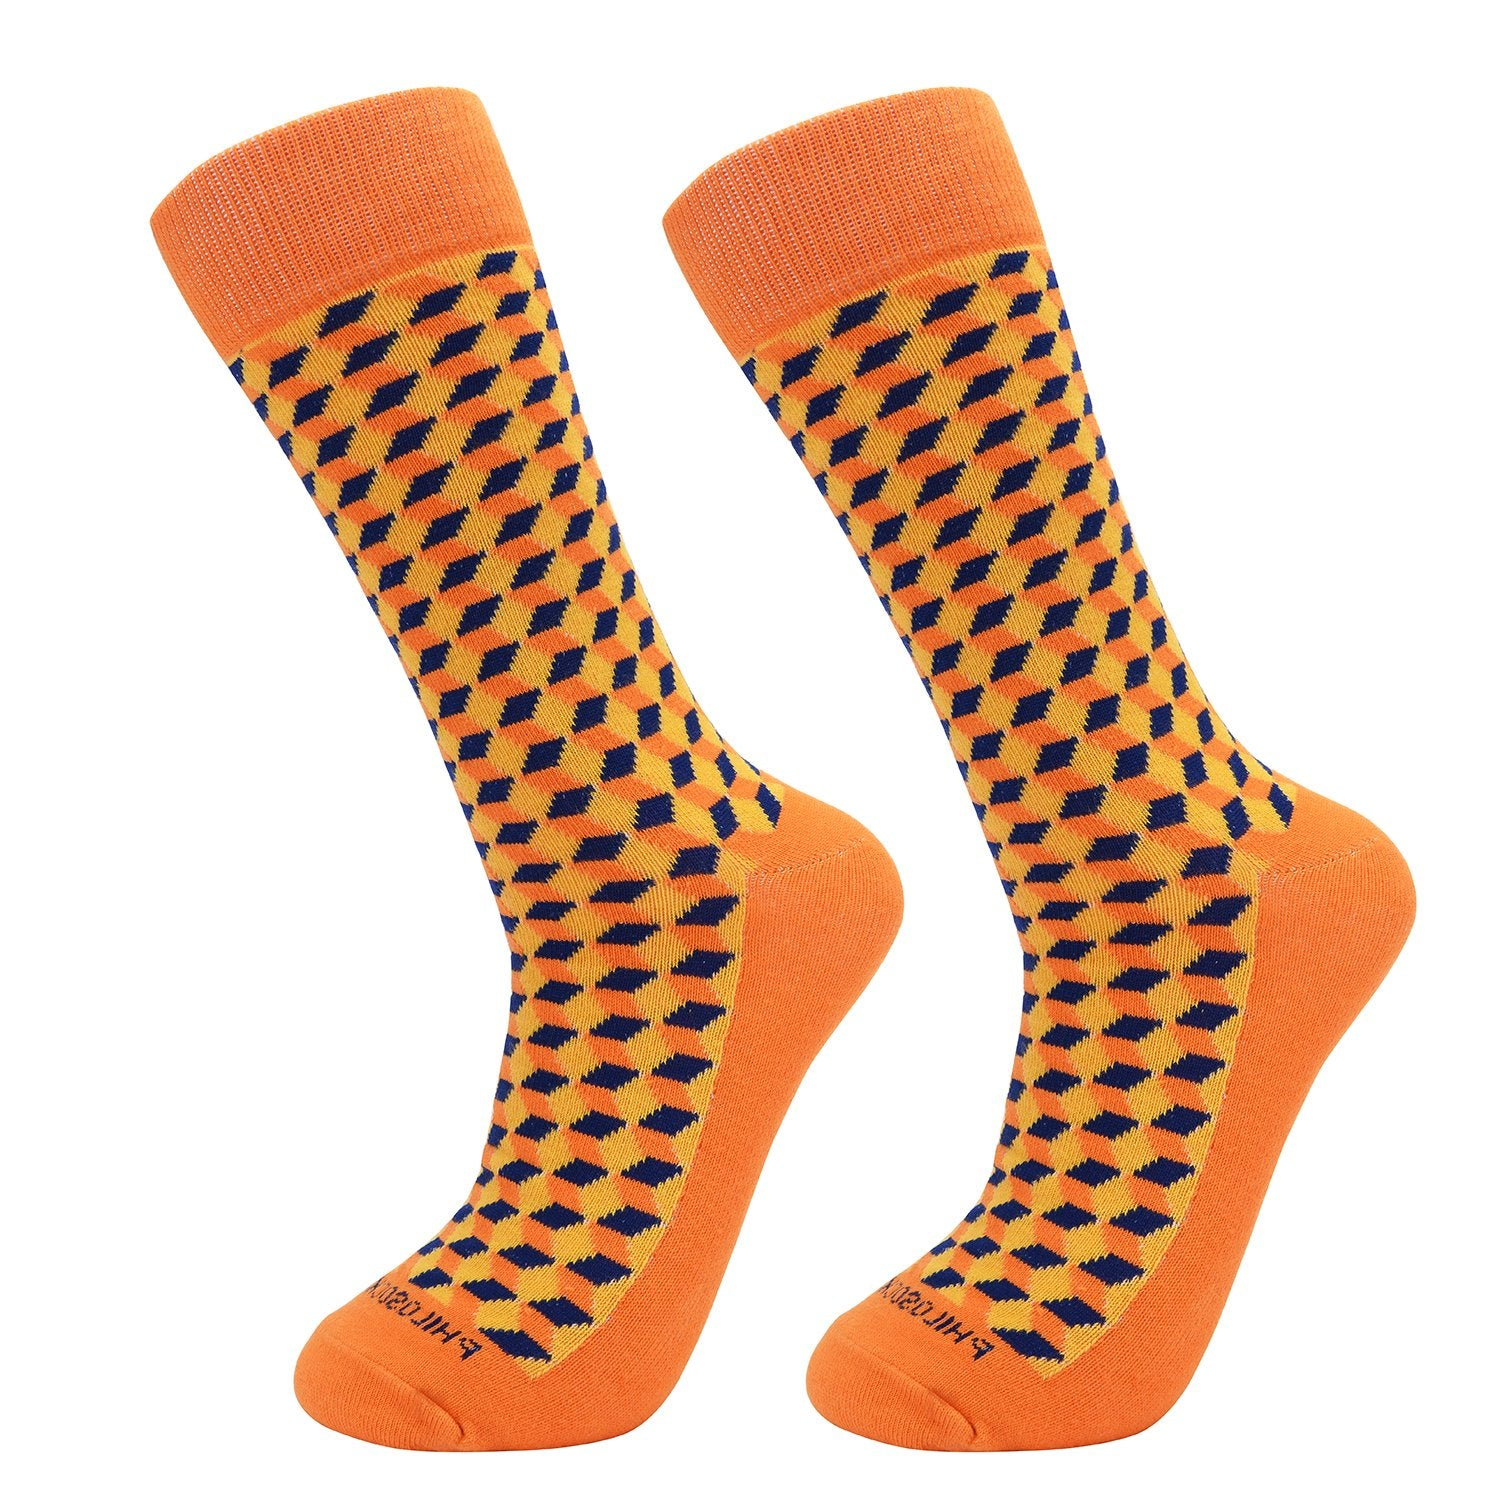 Socks-Squared-Cool-Patterns-Crew-Socks-Orange